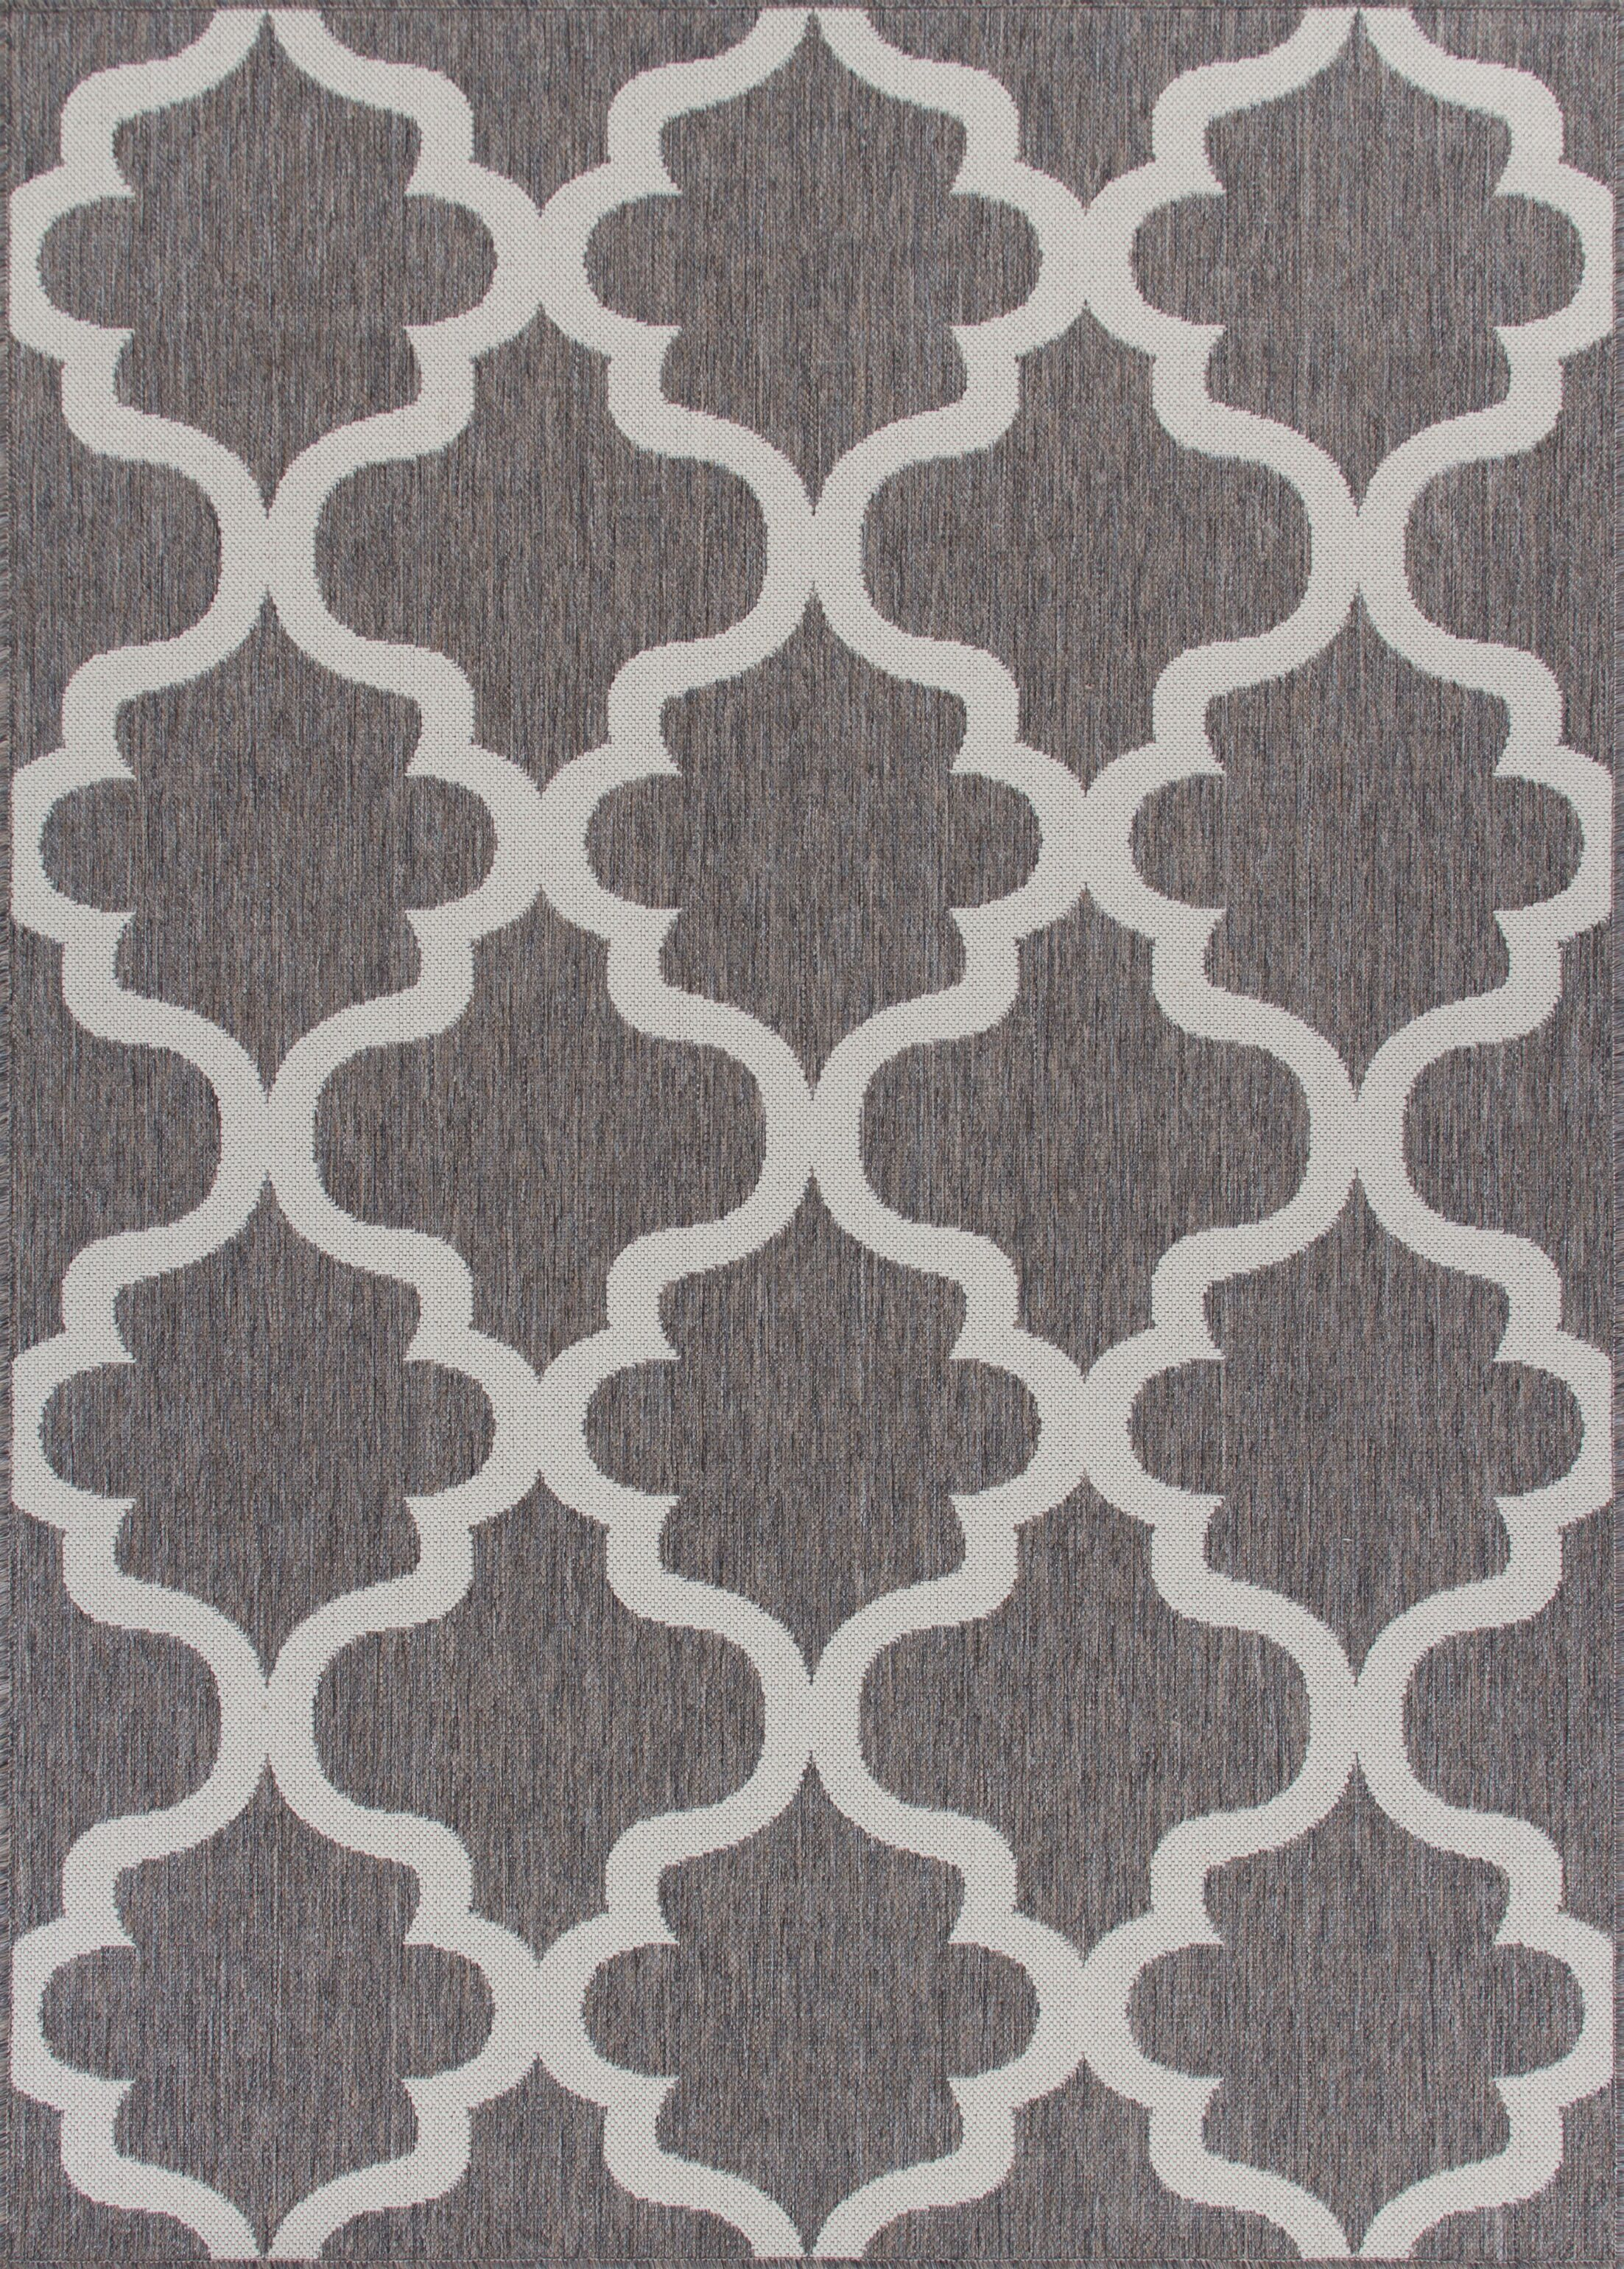 Ricky Weather-Proof Gray Indoor/Outdoor Area Rug Rug Size: Rectangle 6'x9'